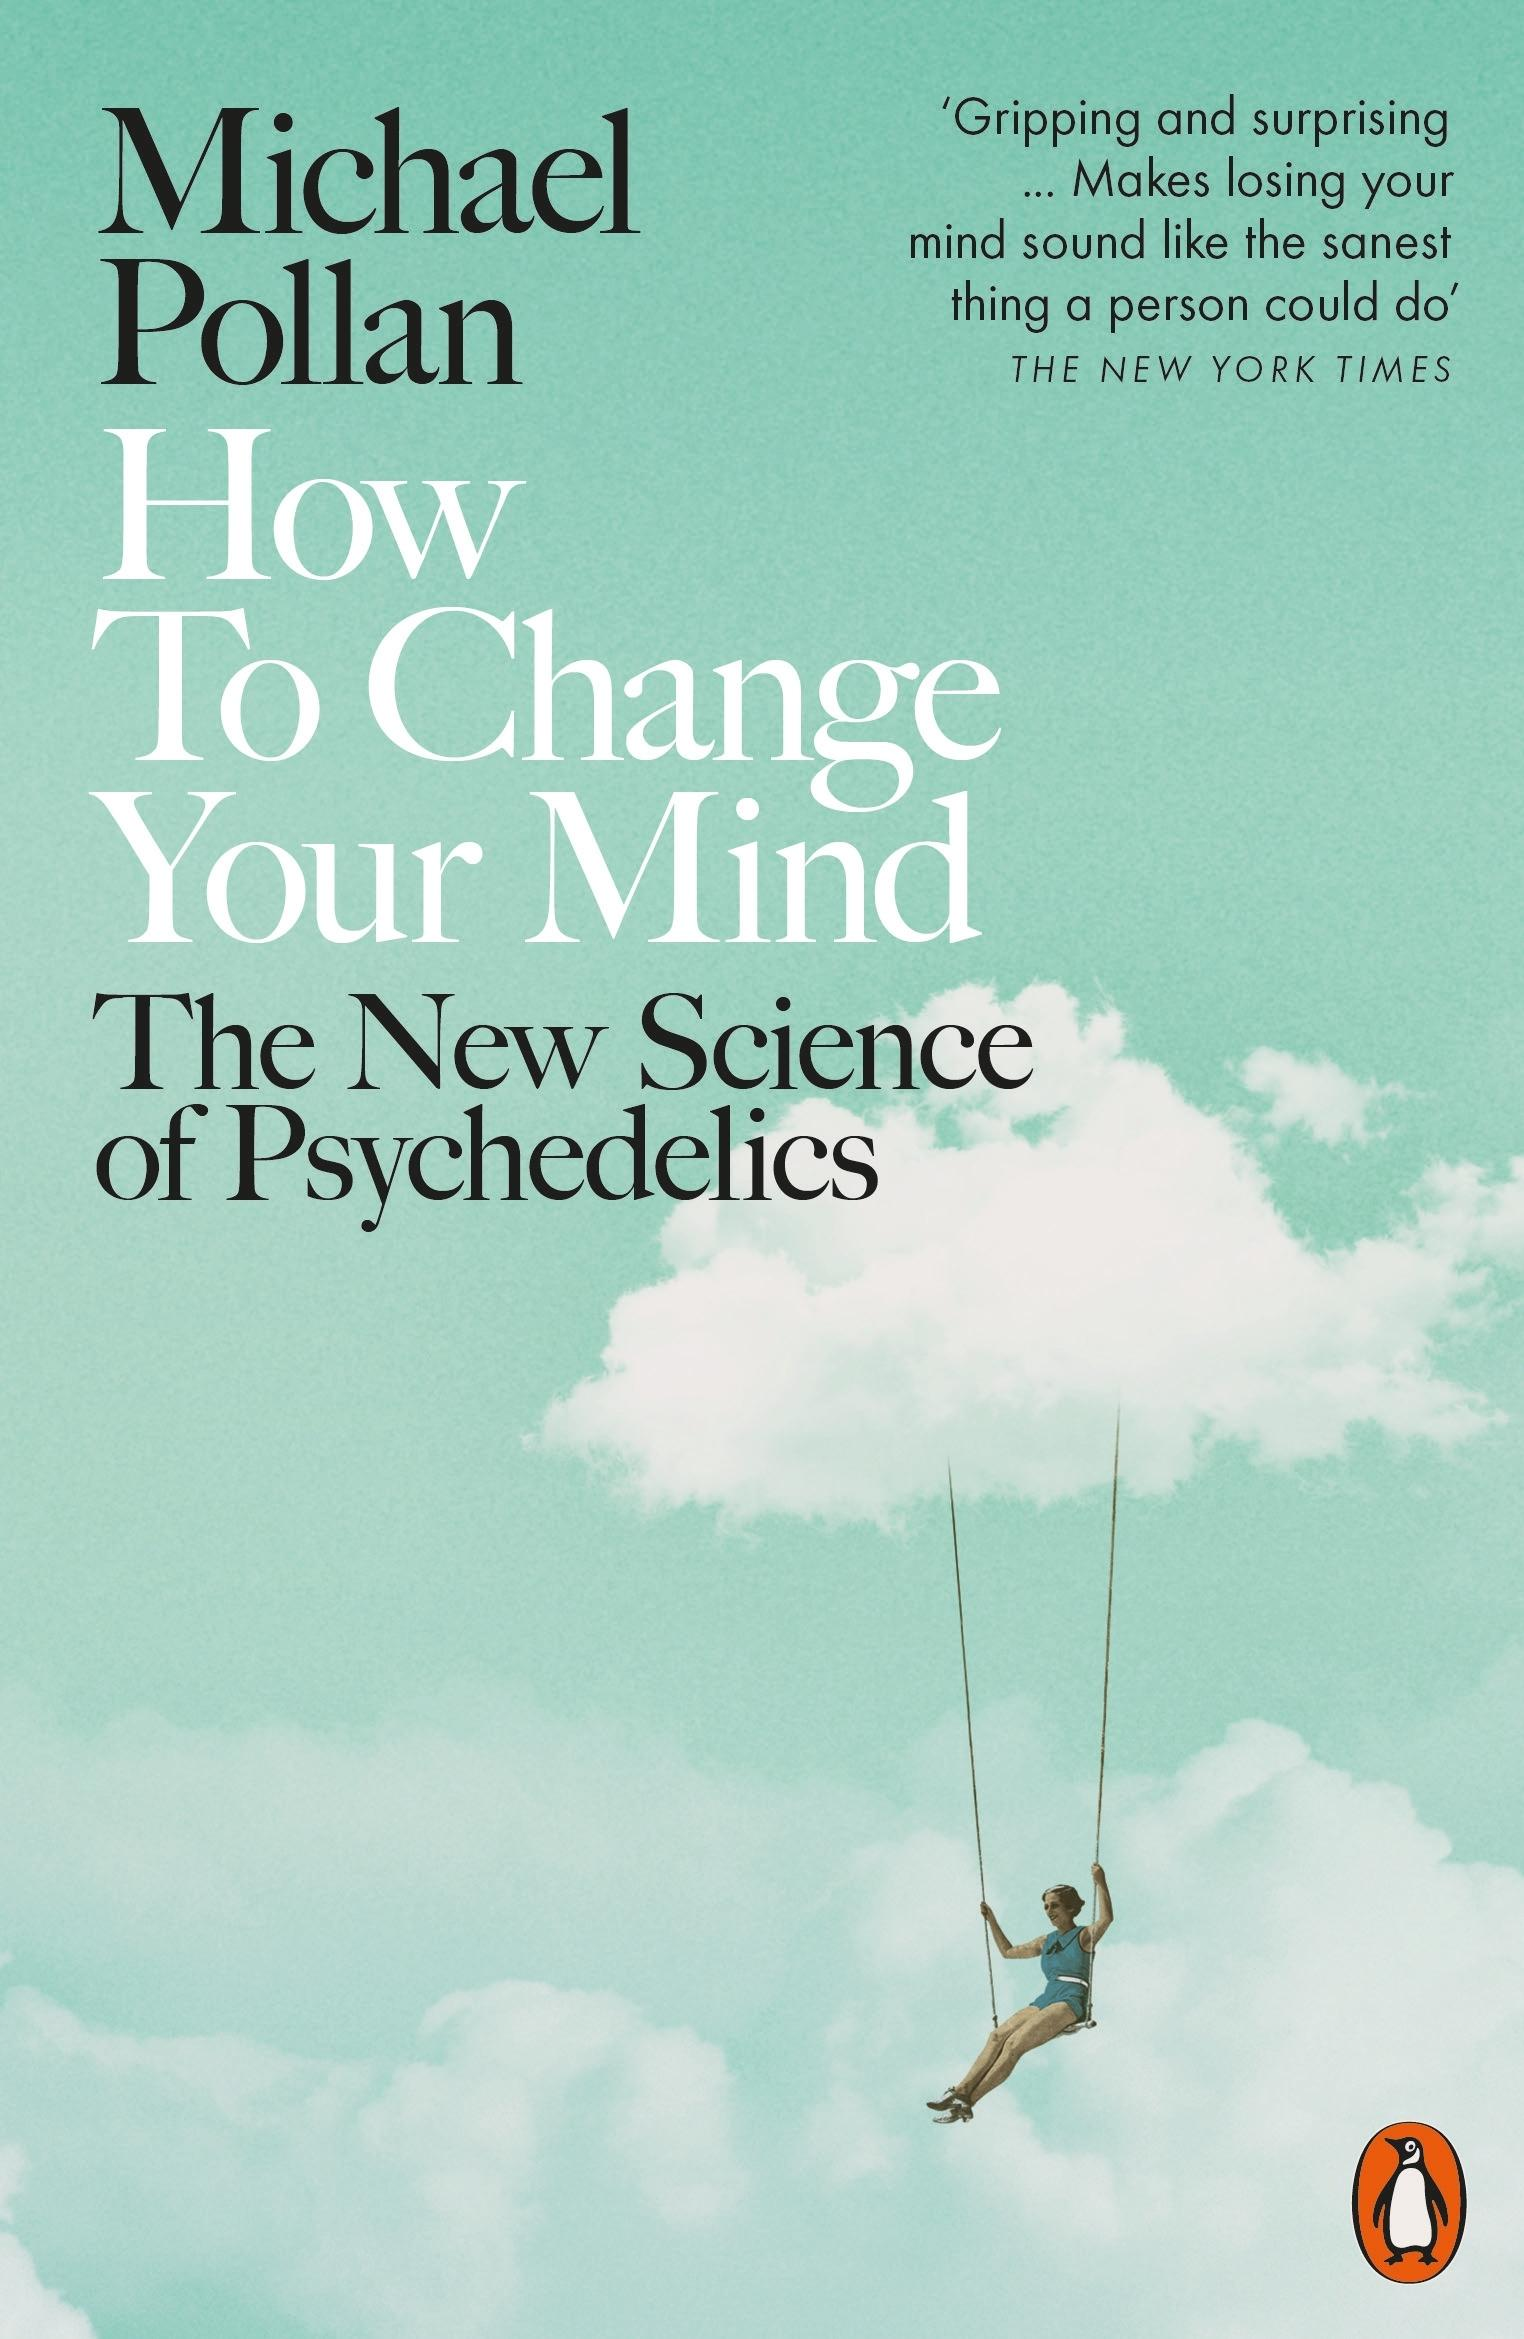 How To Change Your Mind: The New Science of Psychedelics by Michae Pollan